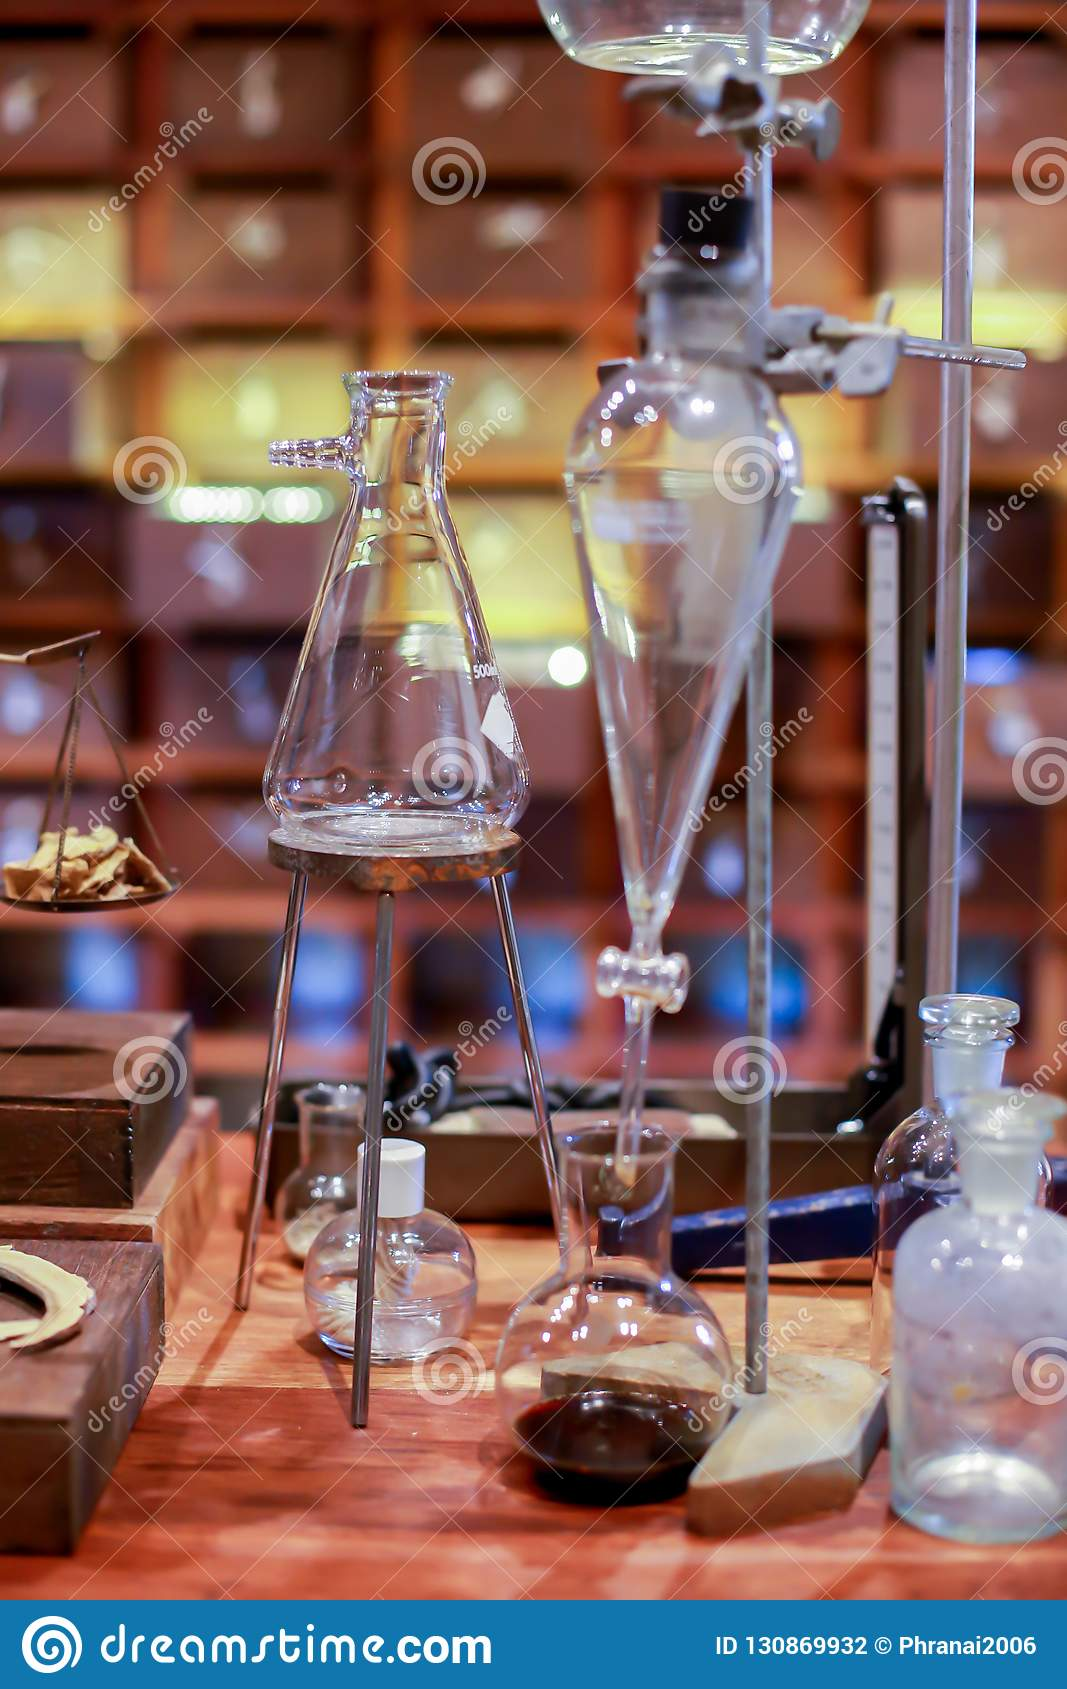 Vintage Equipment Of Chemical Laboratory On Wooden Table